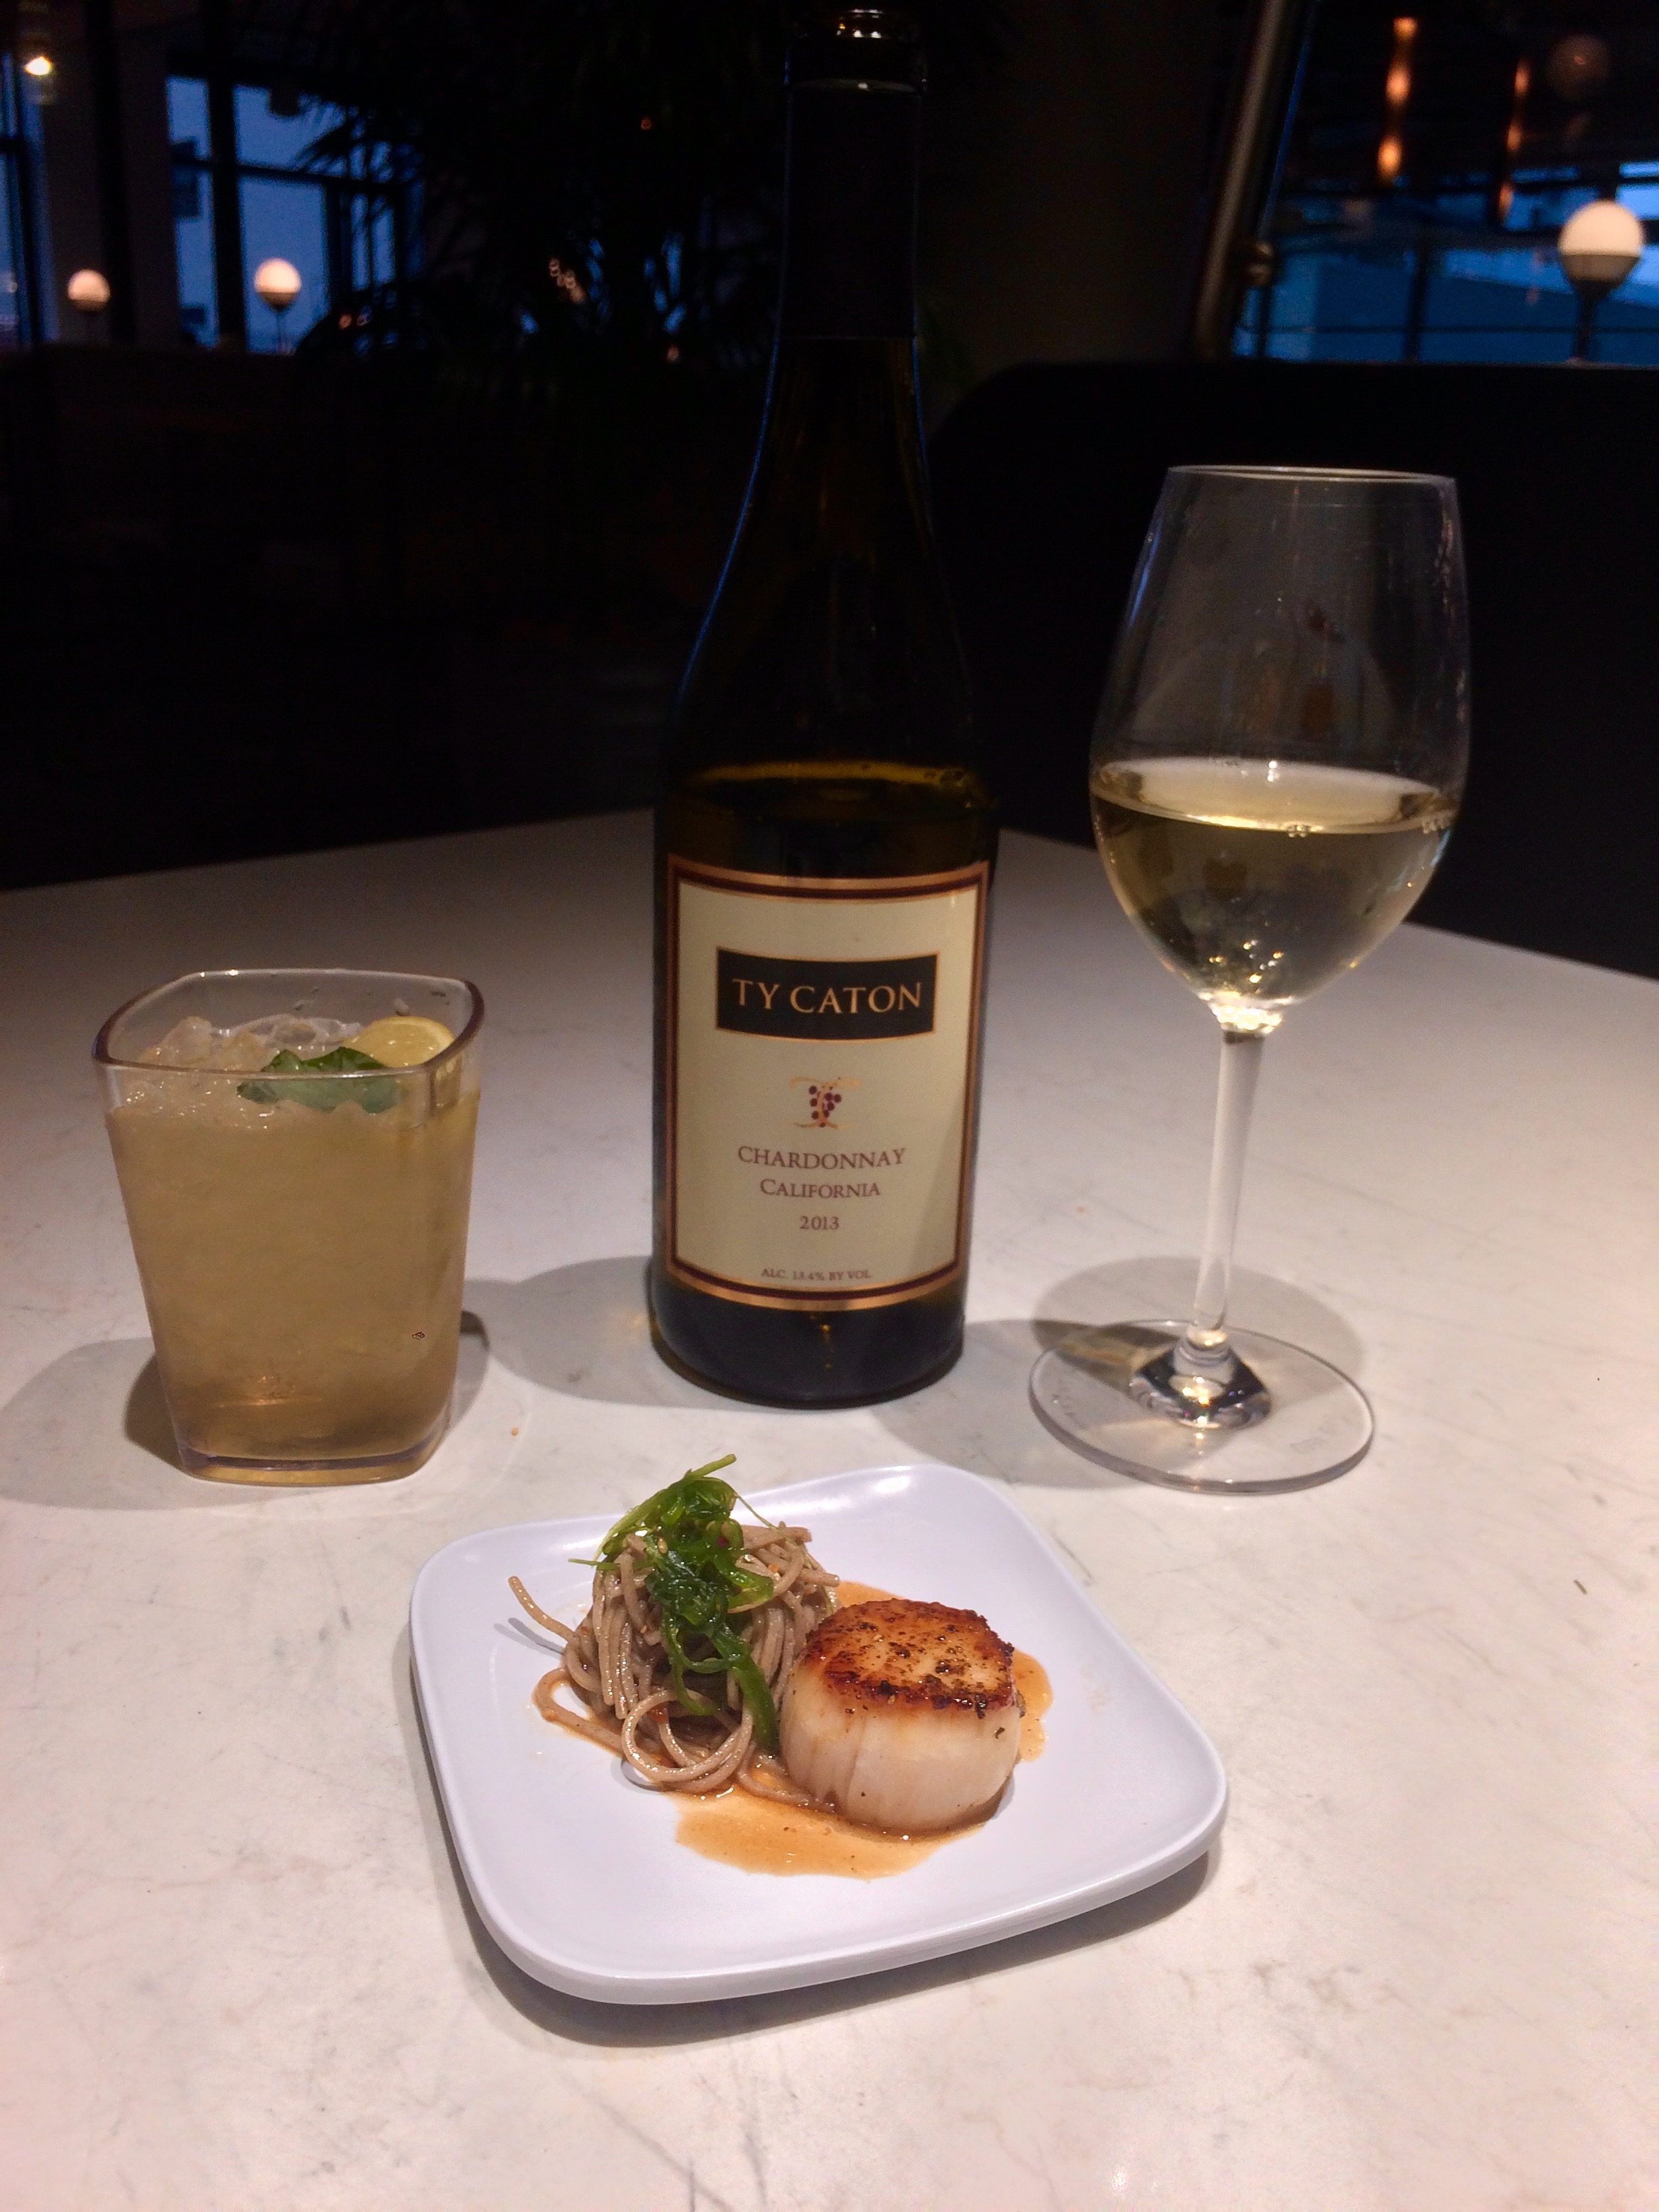 Wine pairing with cocktail, scallop, and pasta